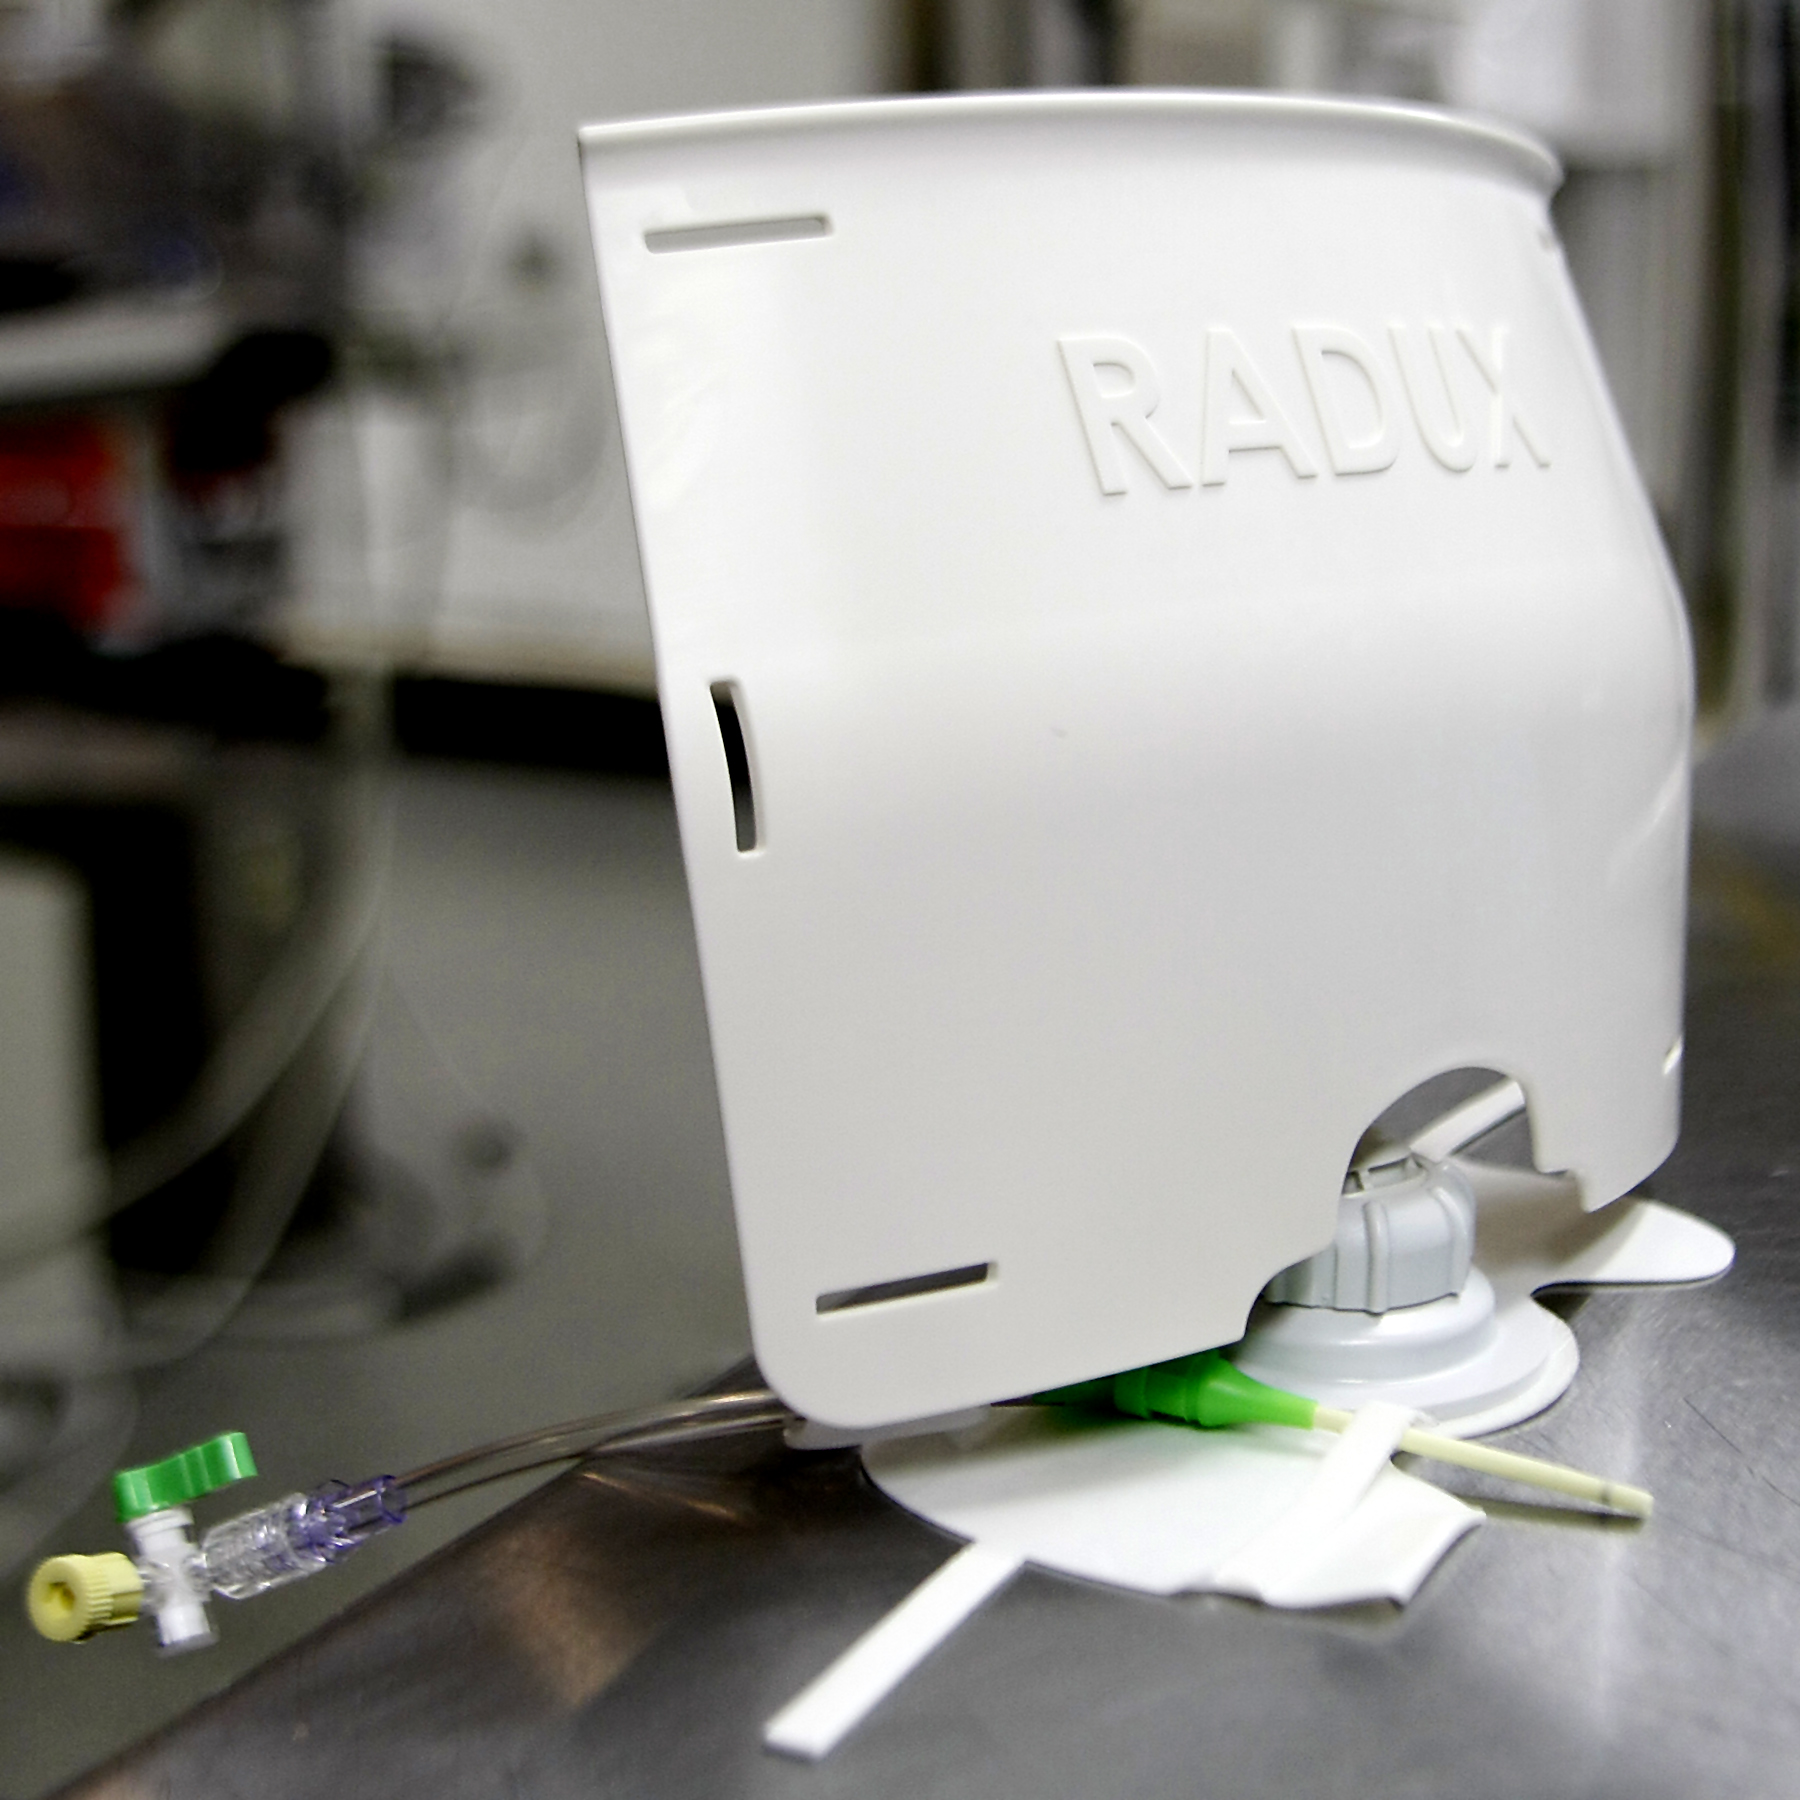 Success Stories: Radux helps those who help you